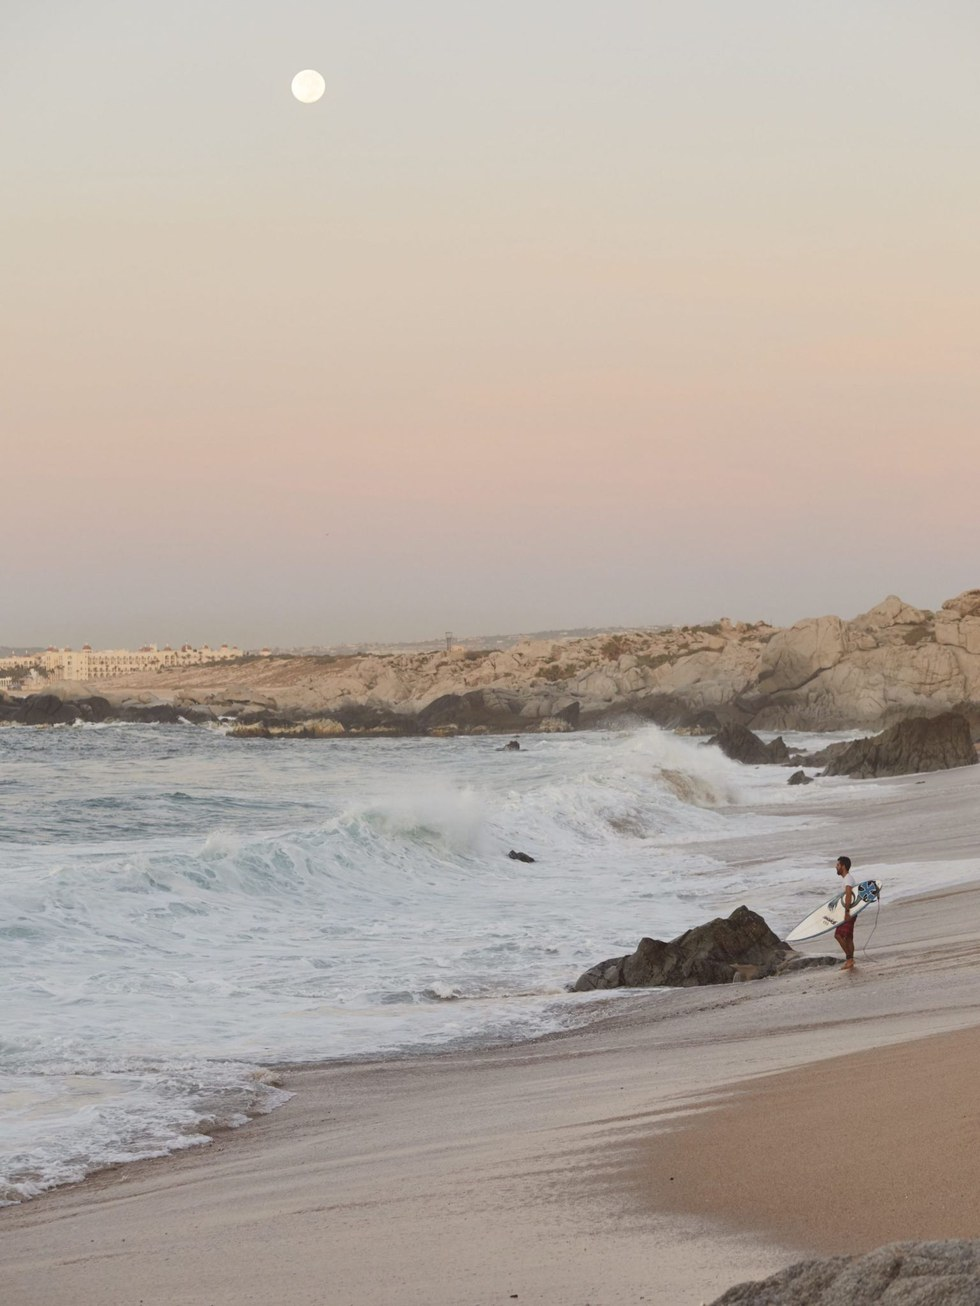 A surfer ready to hit the waves at Costa Azul